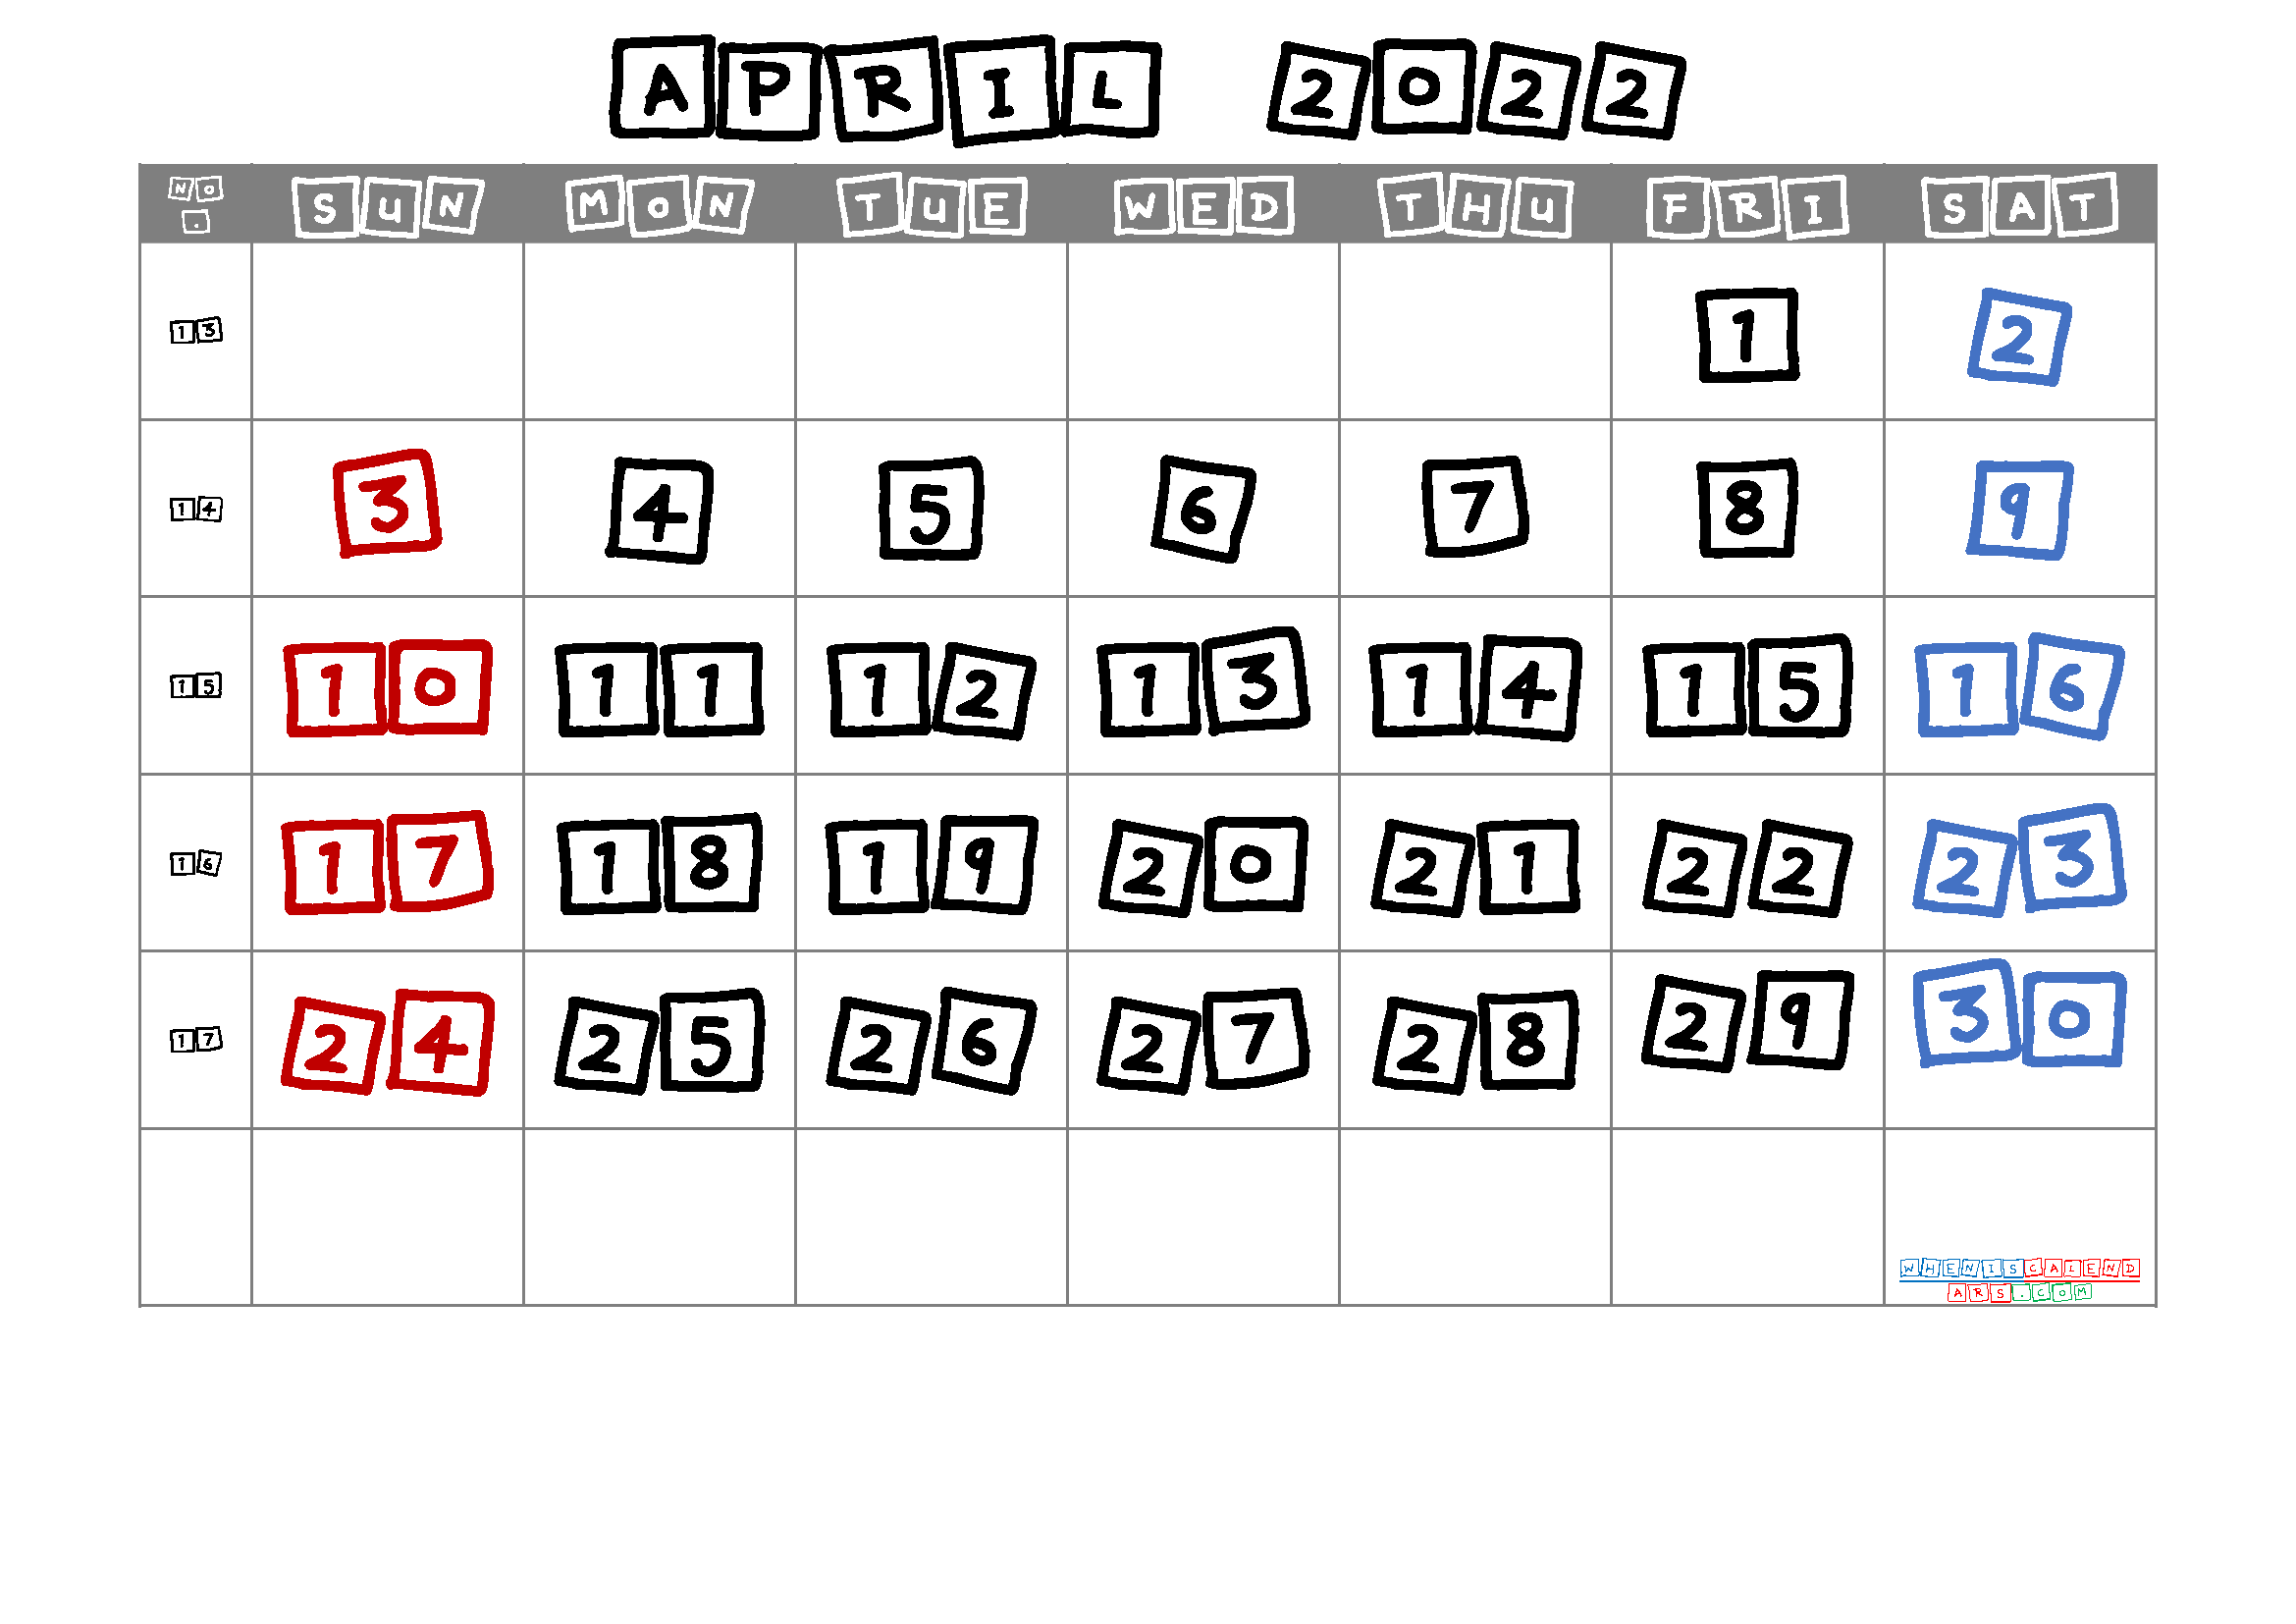 Free Printable April 2022 Calendar with Week Numbers